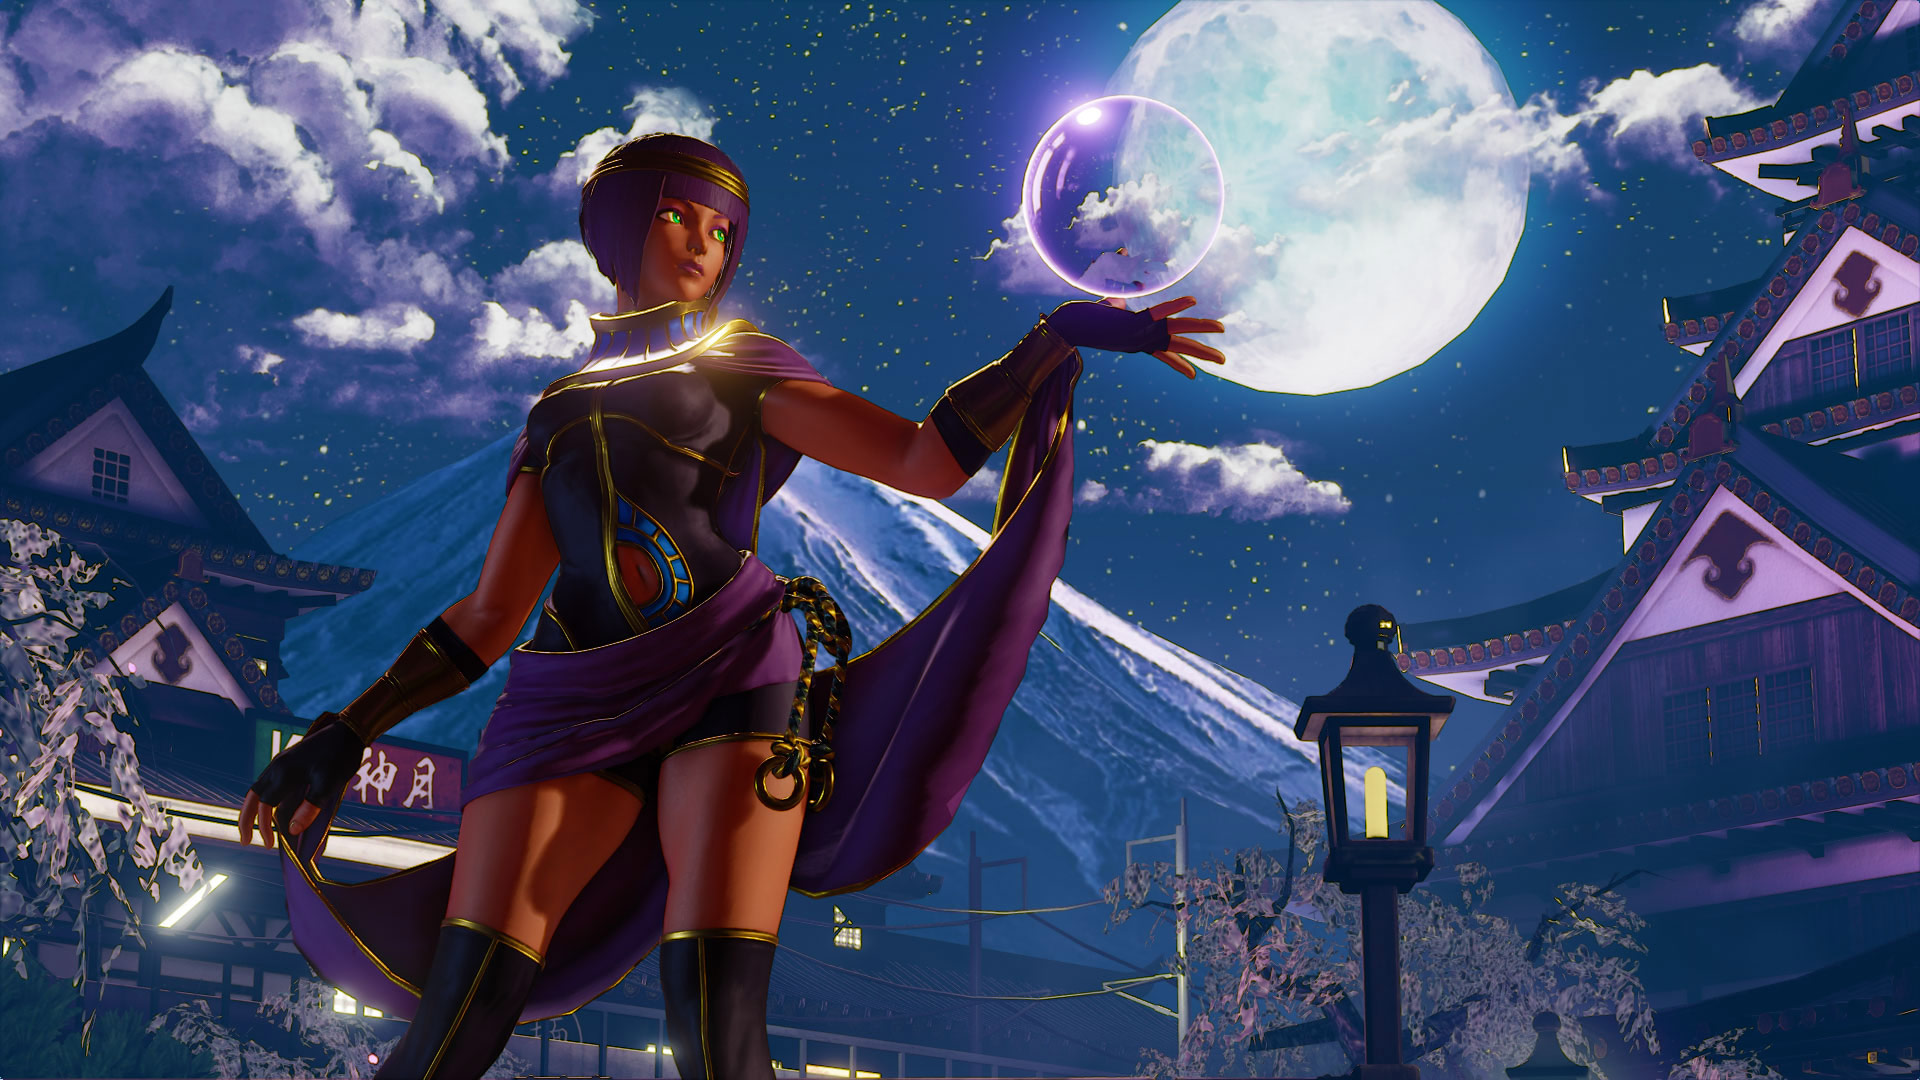 Menat in Street Fighter 5 3 out of 11 image gallery